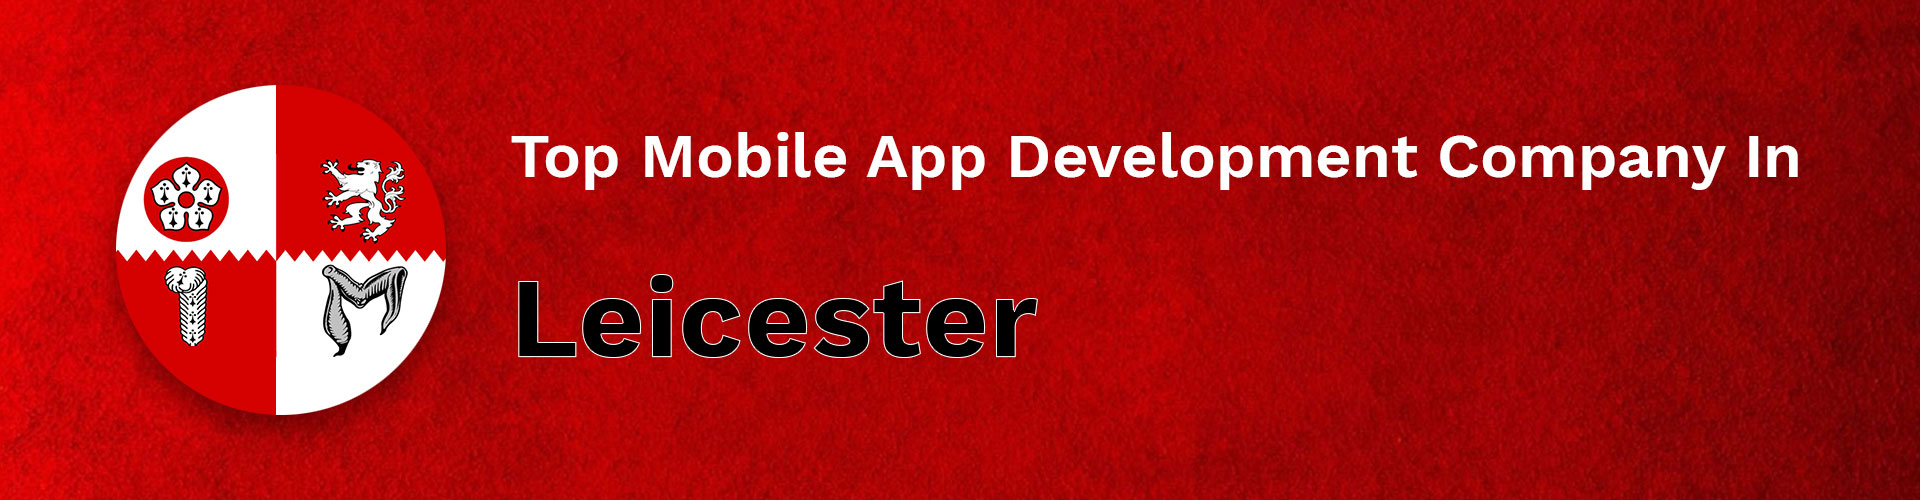 mobile app development company leicester